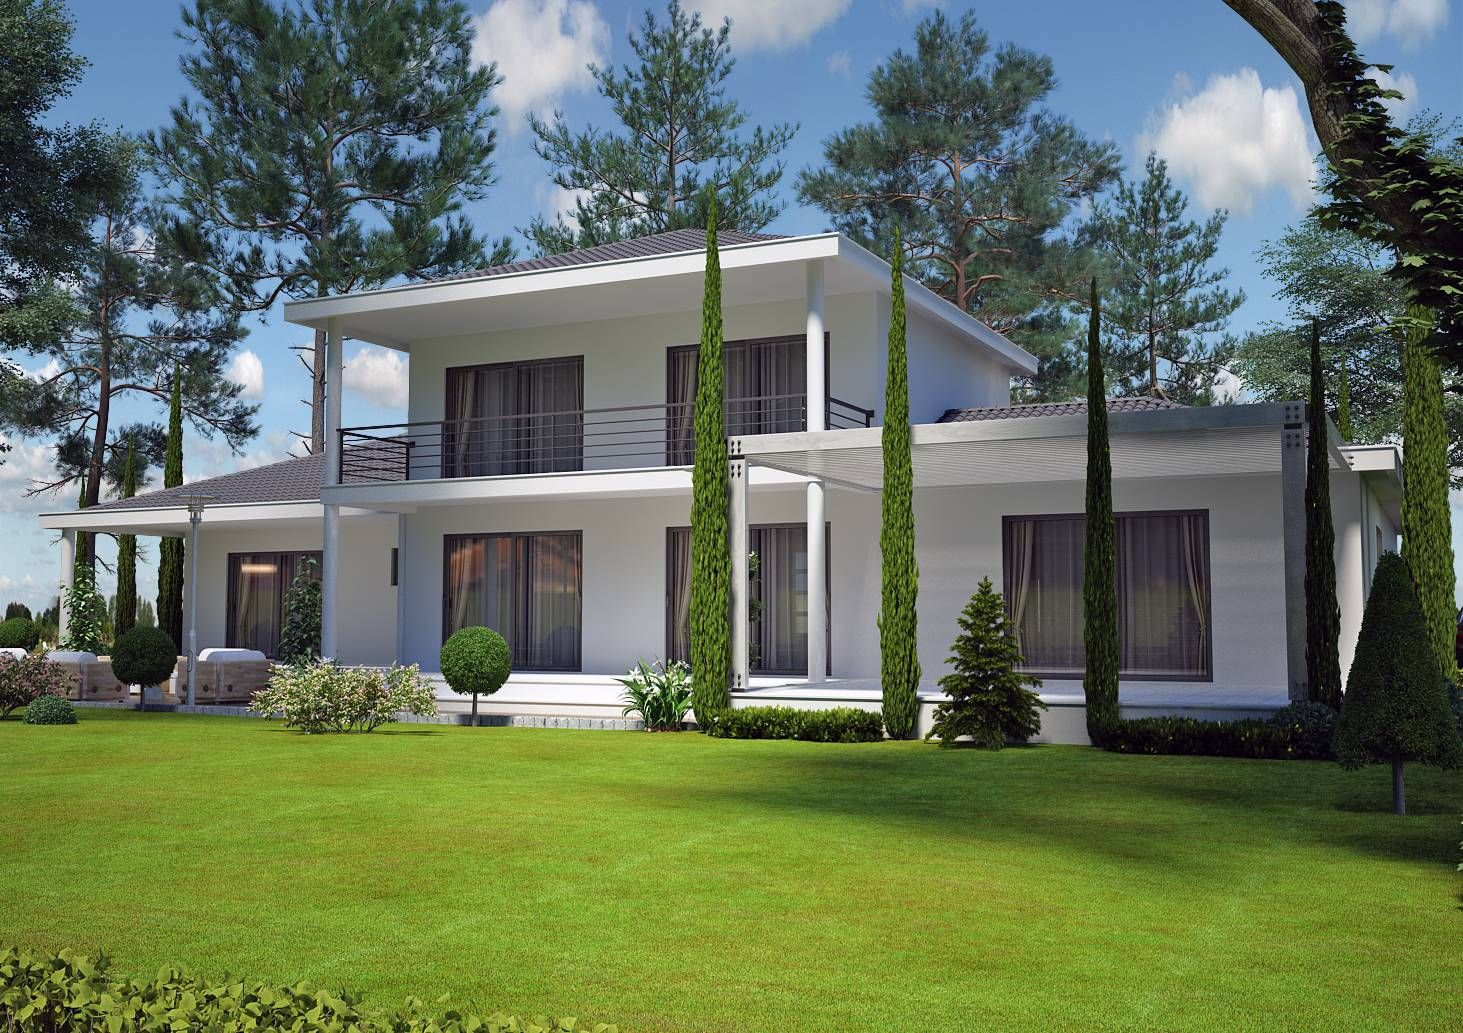 Villa contemporaine 150 m2 etage mod le pinede salon for Modele de villa a construire